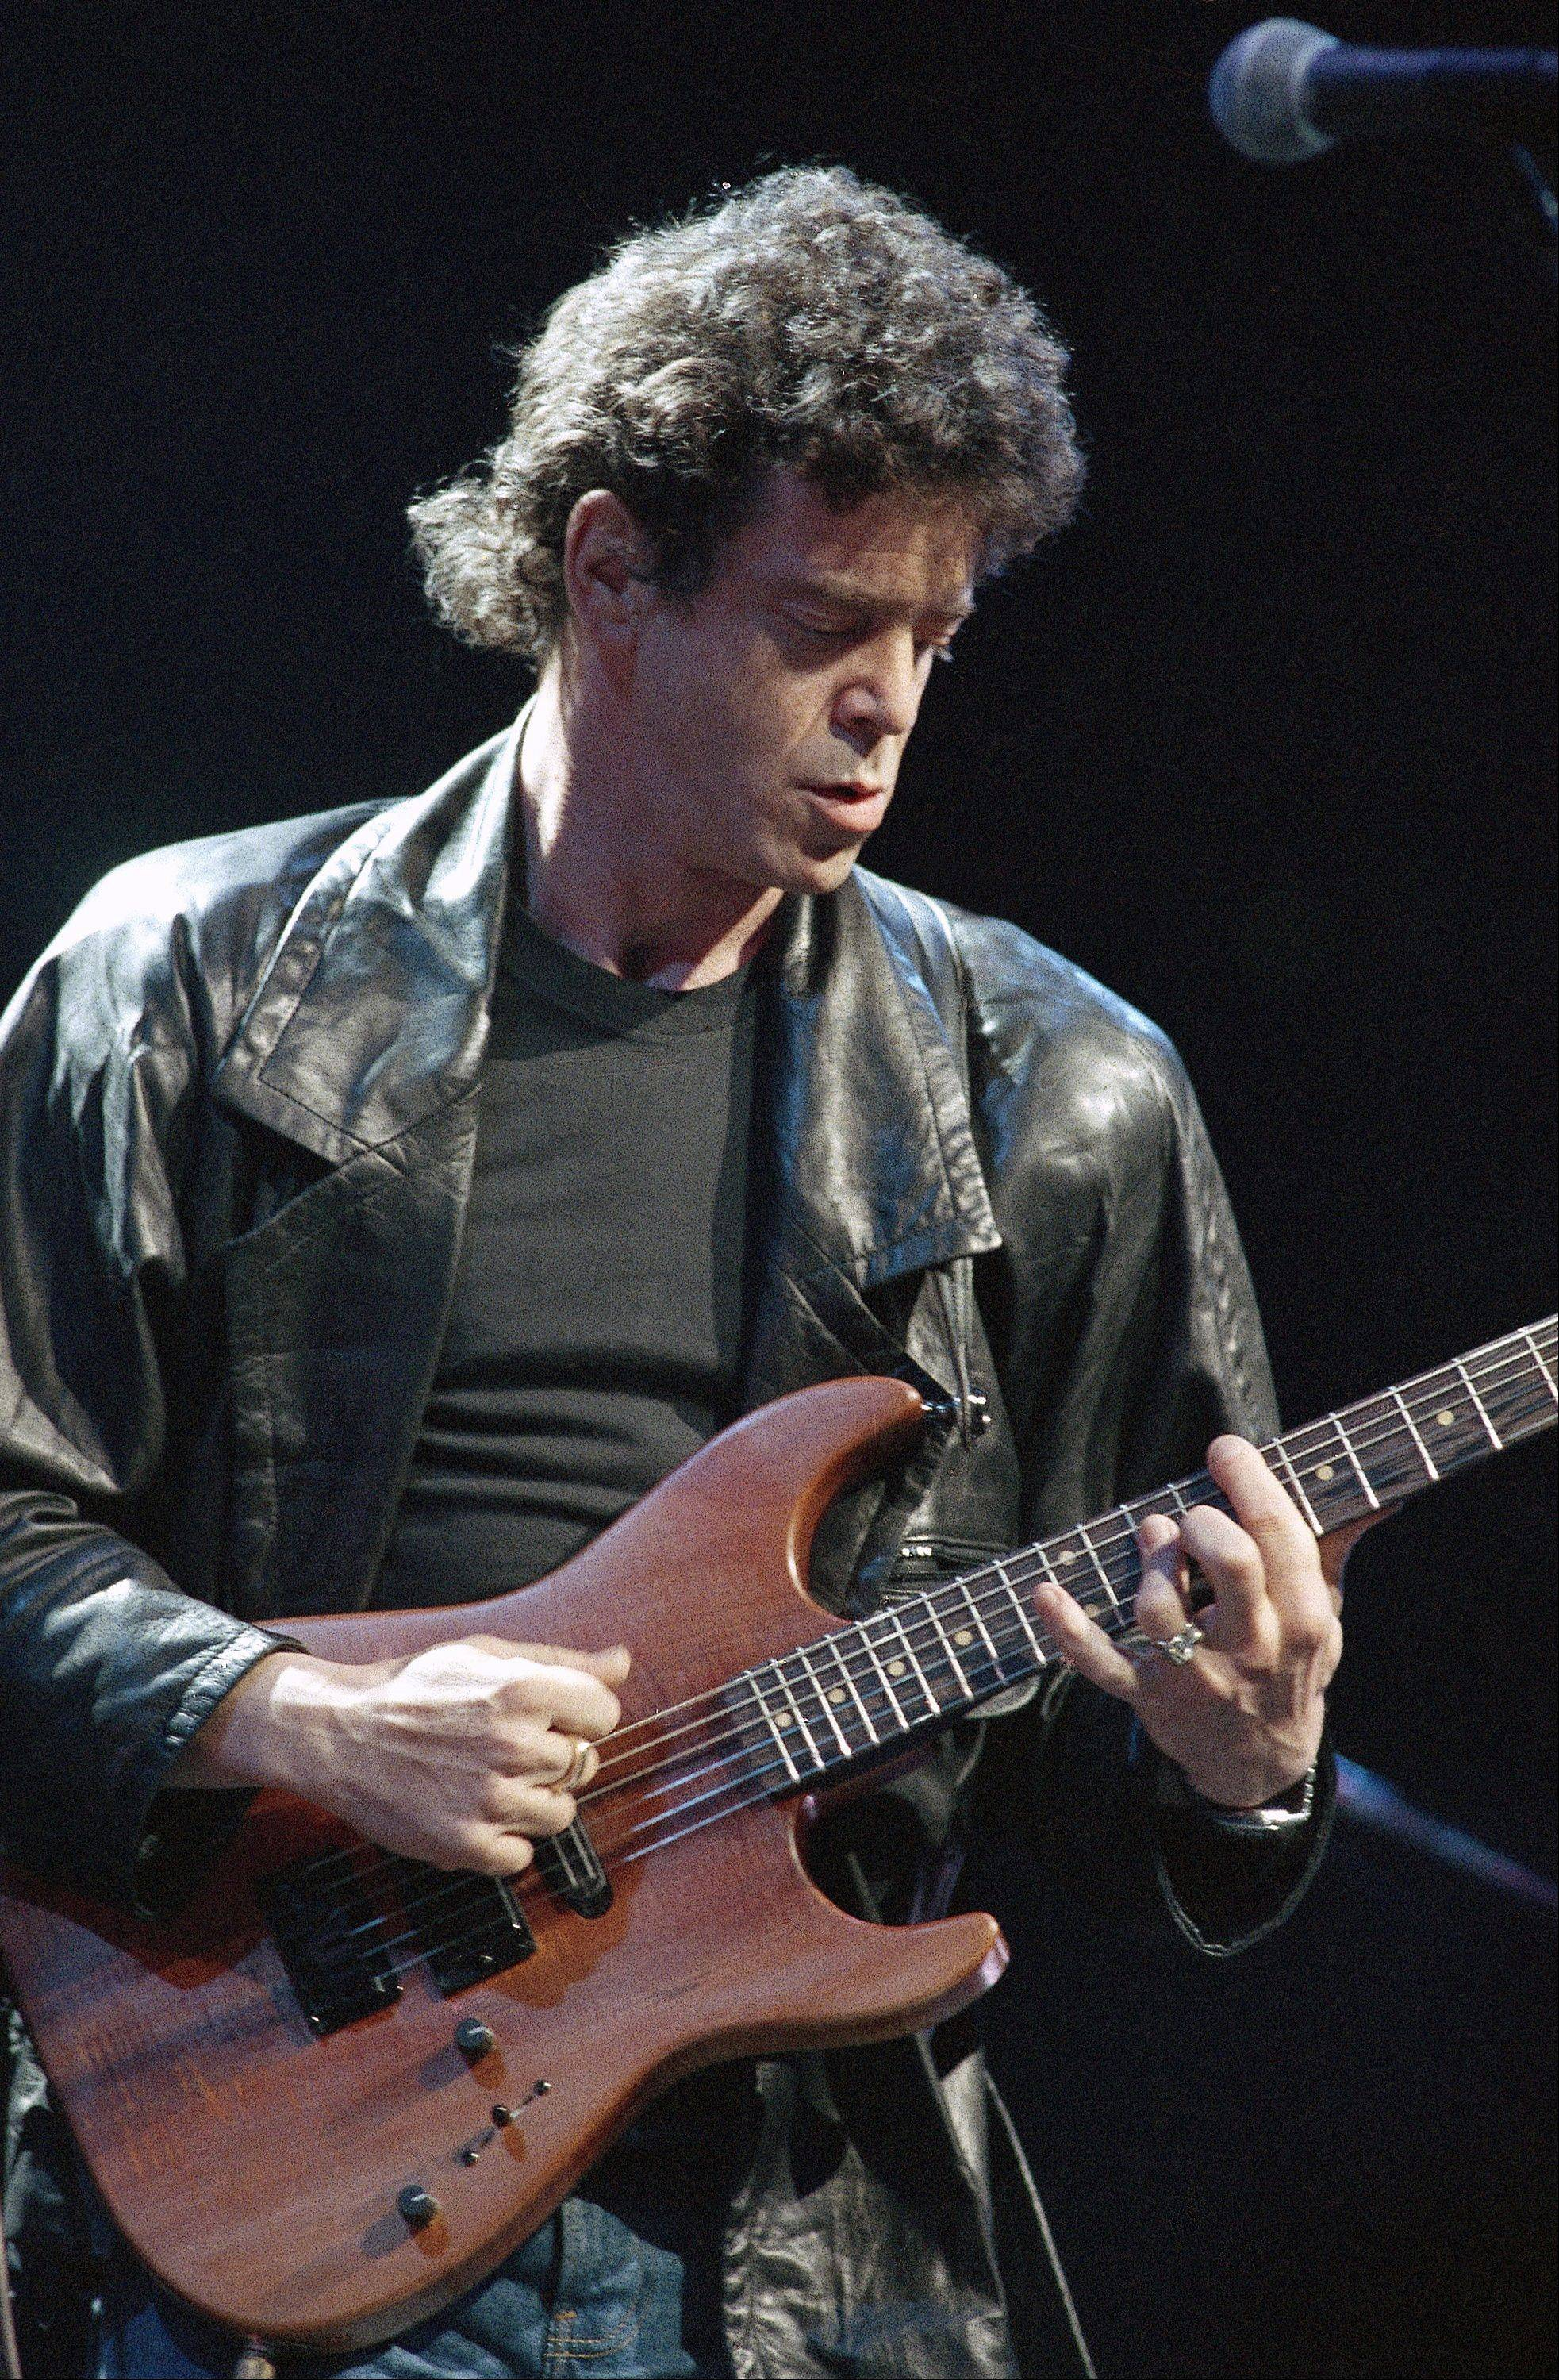 In a June 13, 1986, file photo, Lou Reed performs during musical number at a benefit in Chicago, for Amnesty International. Reed's literary agent Andrew Wylie says the legendary musician died Sunday morning.